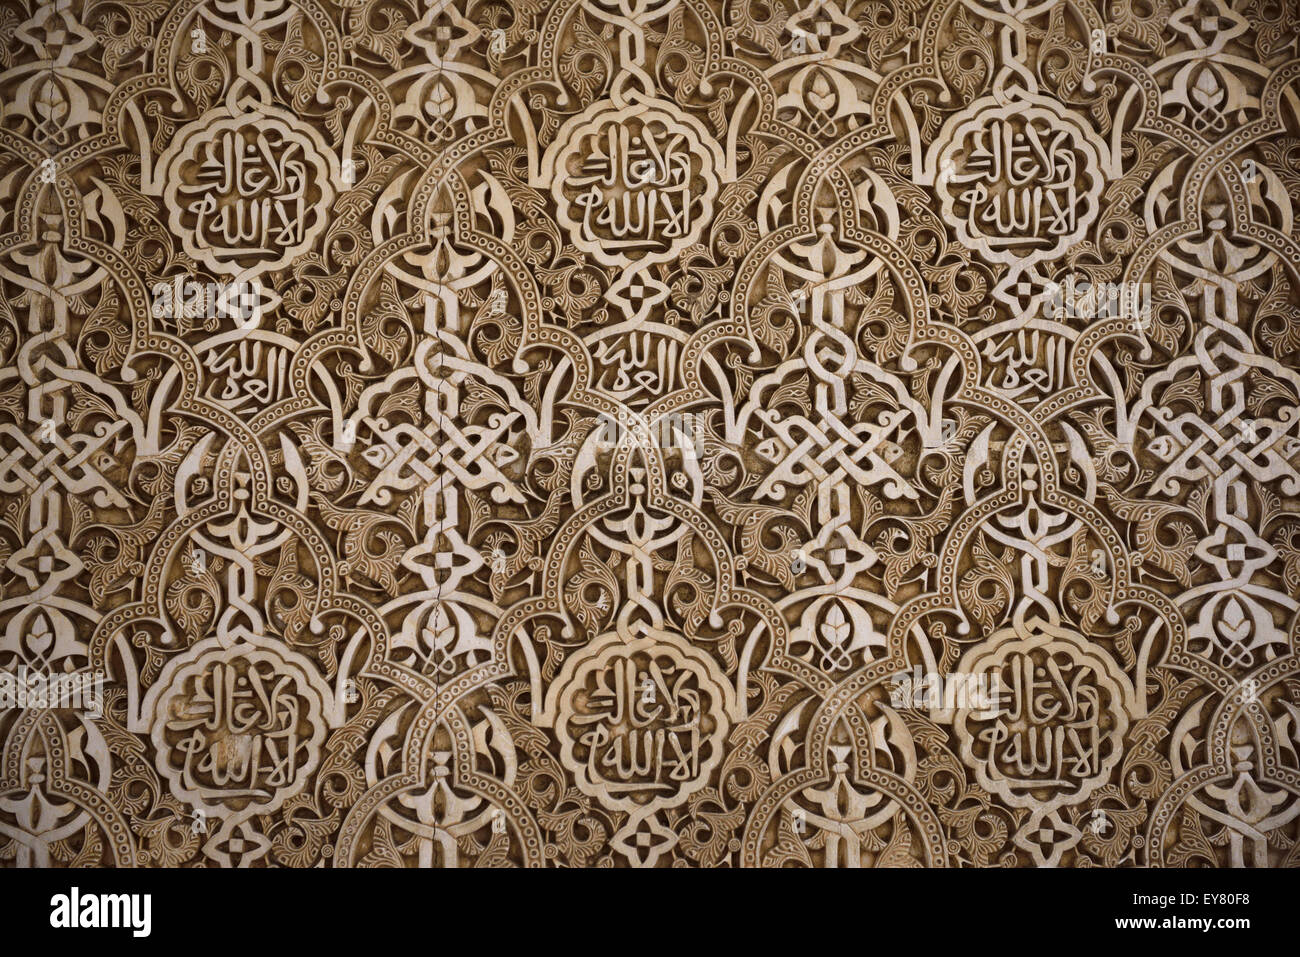 Detail of arabesque wall designs at the courtyard of the Lions of Nasrid Palaces Alhambra Granada - Stock Image